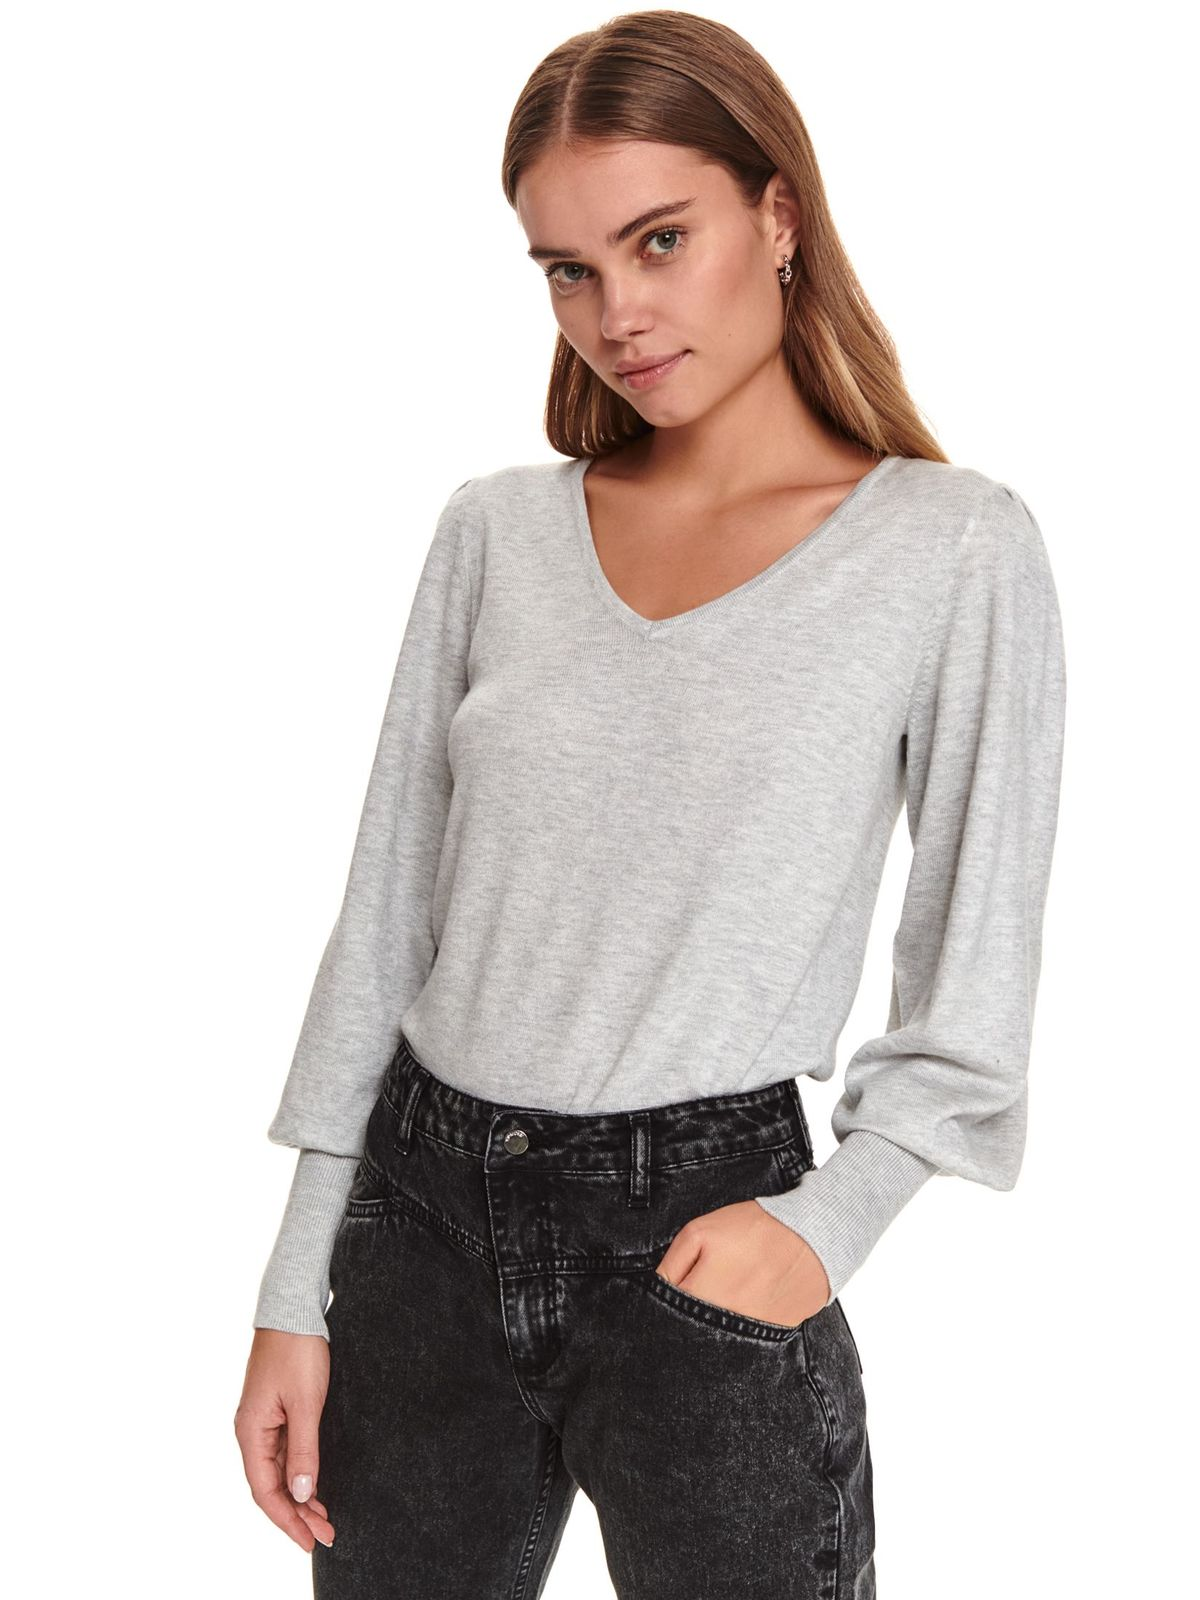 Lightgrey sweater casual knitted flared with v-neckline